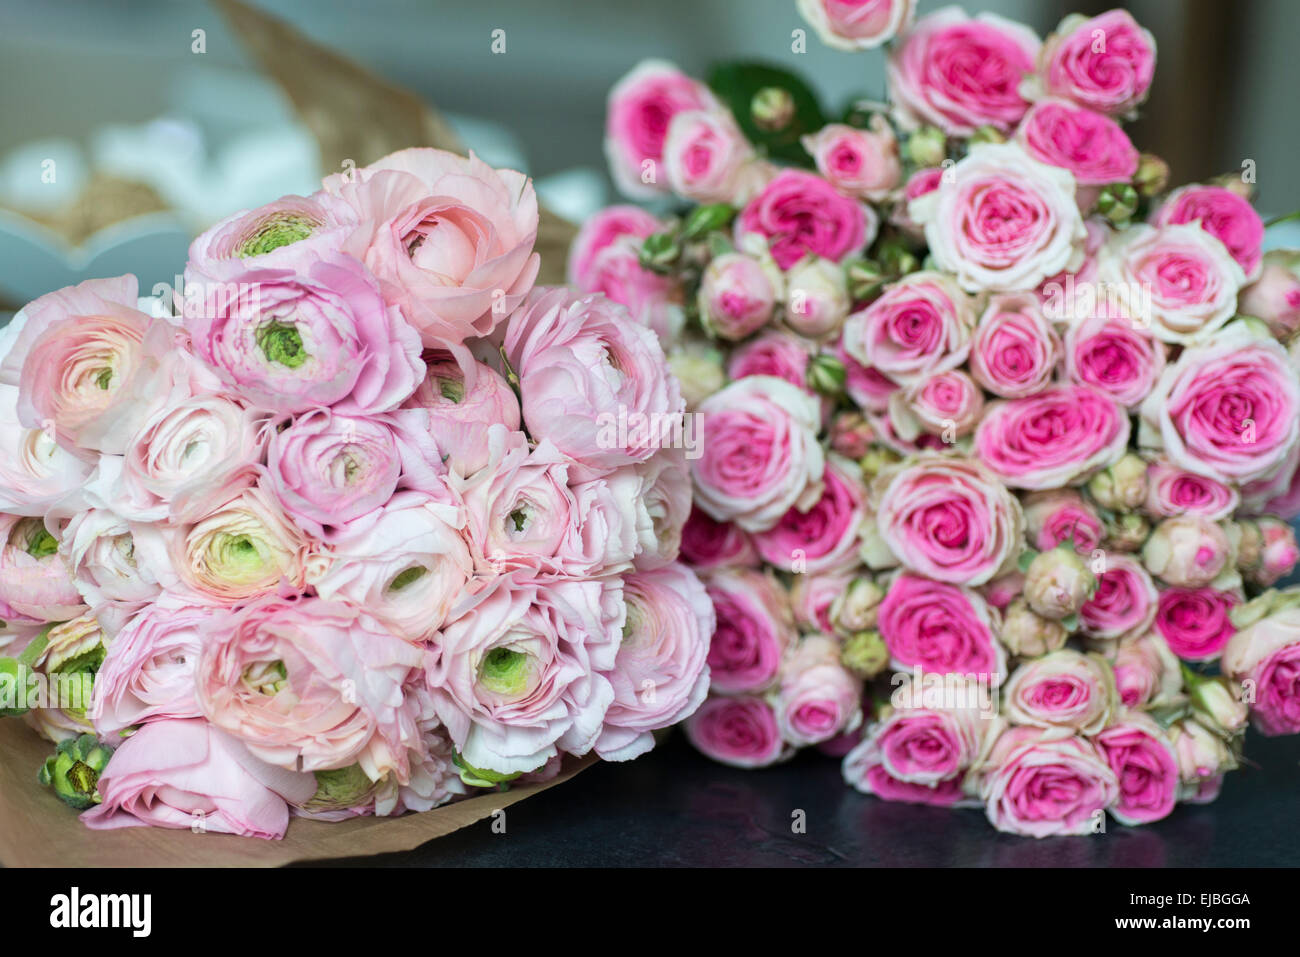 Bouquet of pink ranunculus and Mimi Eden spray roses in Paris apartment